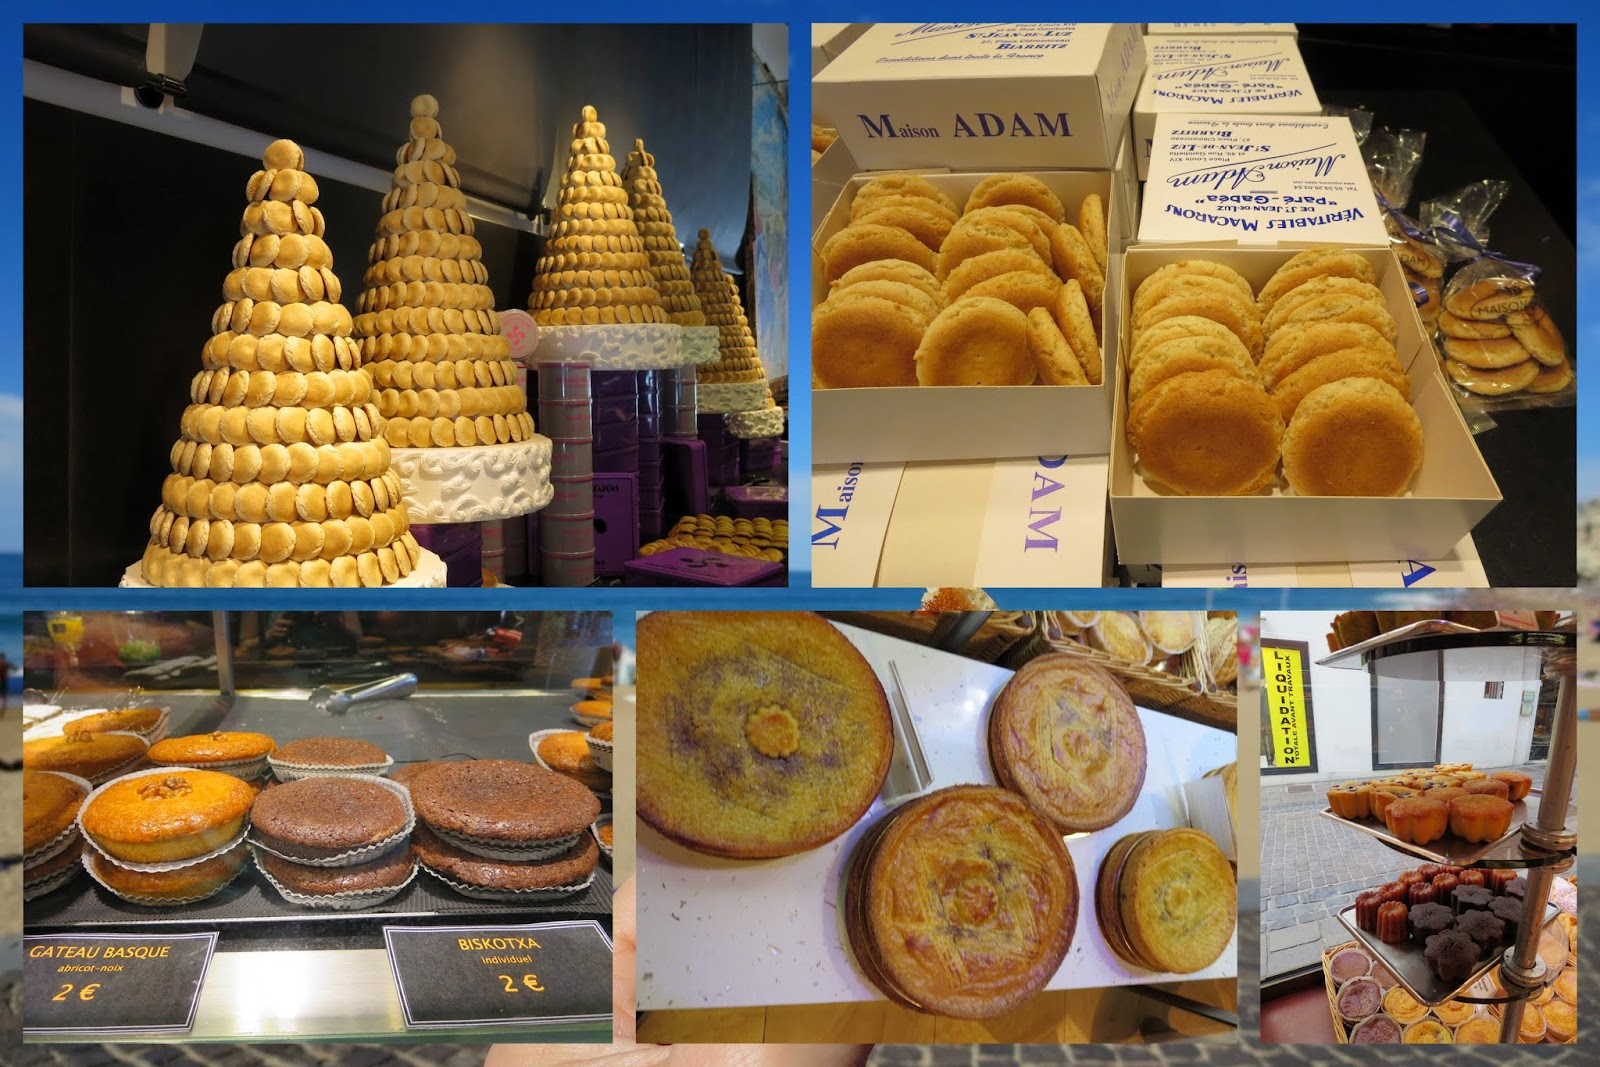 A Weekend in French Basque Country - Basque Gateau and Macaron